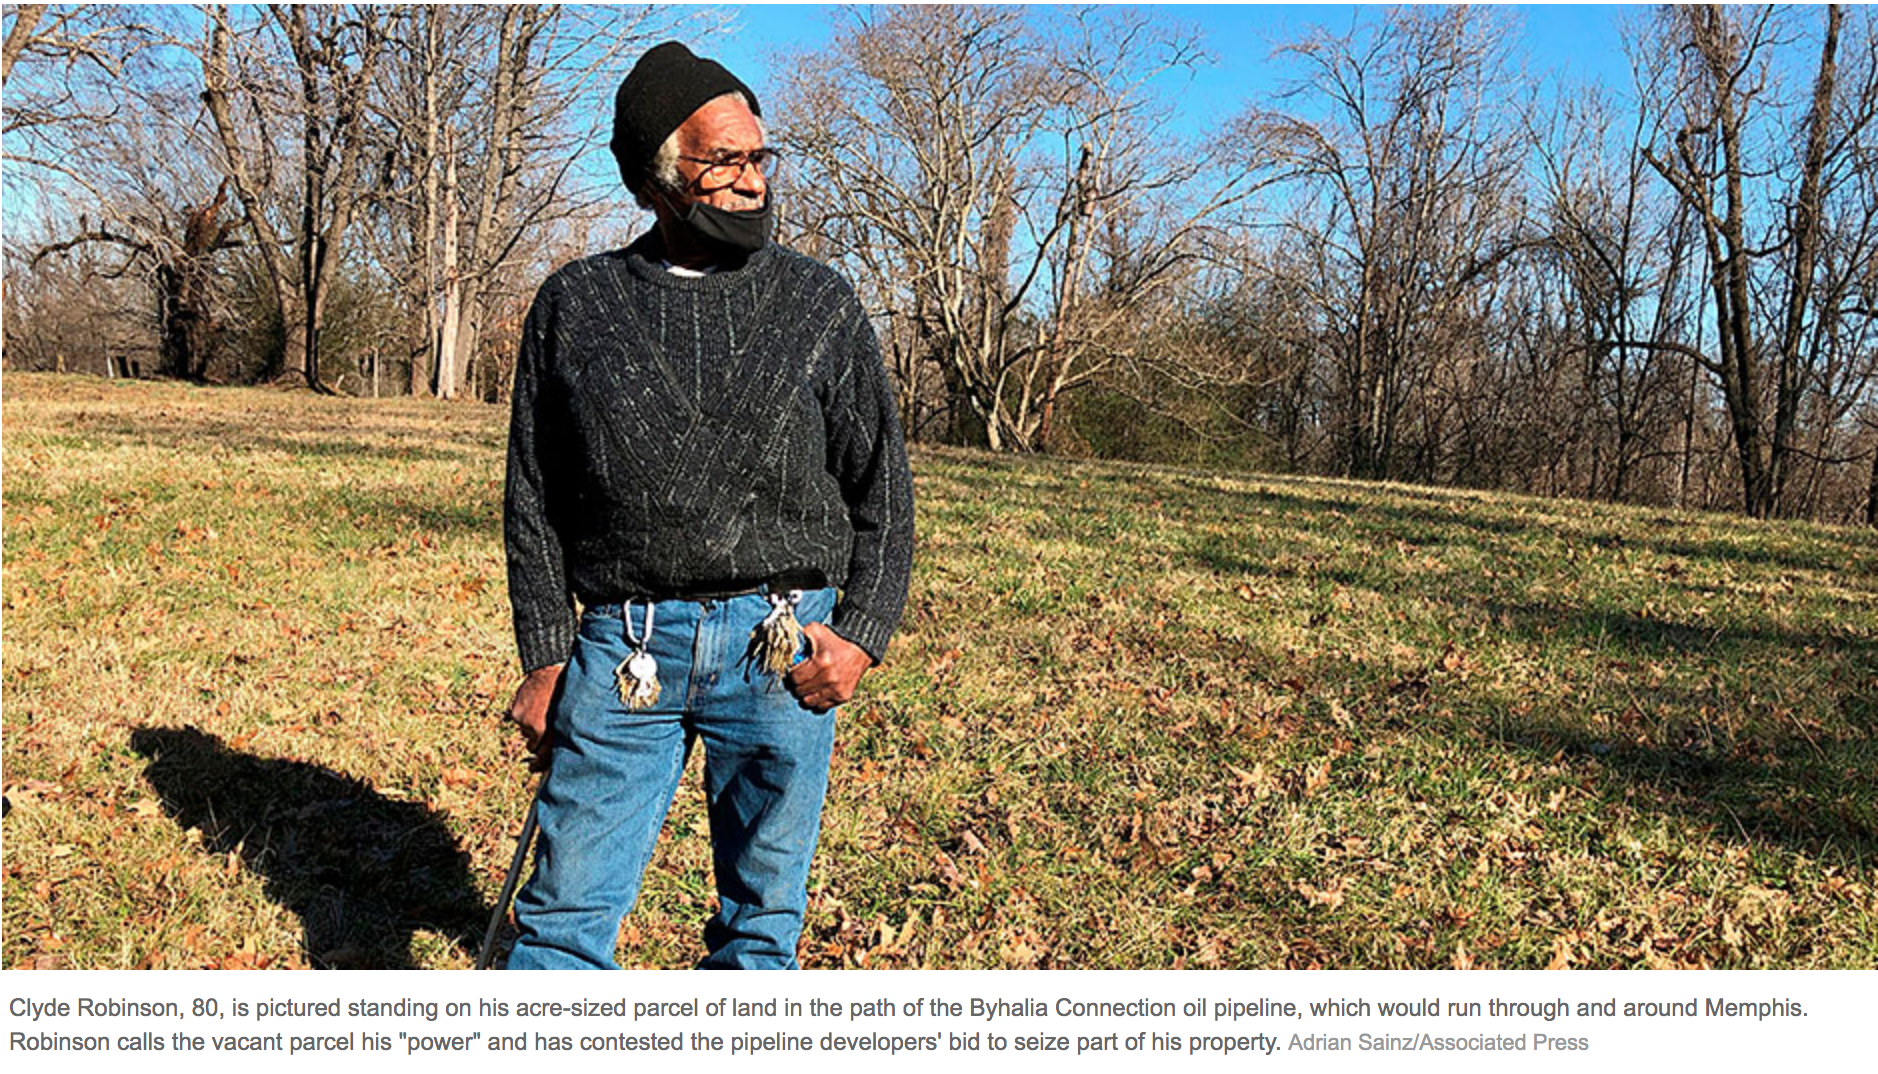 """Clyde Robinson, 80, is pictured standing on his acre-sized parcel of land in the path of the Byhalia Connection oil pipeline, which would run through and around Memphis. Robinson calls the vacant parcel his """"power"""" and has contested the pipeline developers' bid to seize part of his property. (Photo: Adrian Sainz/Associated Press)"""